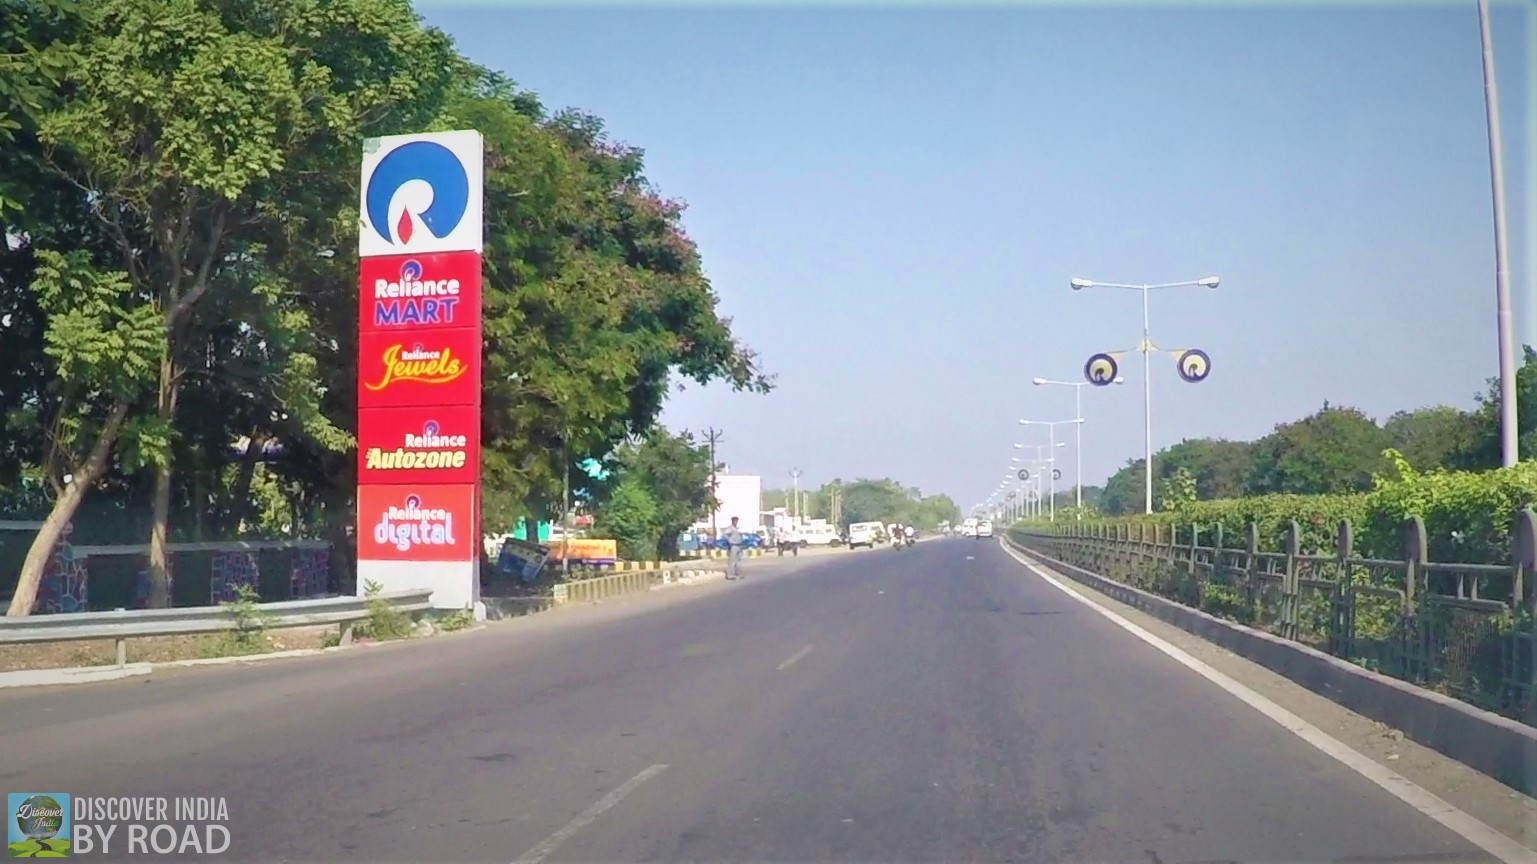 Streets of Jamnagar with reliance sign boards